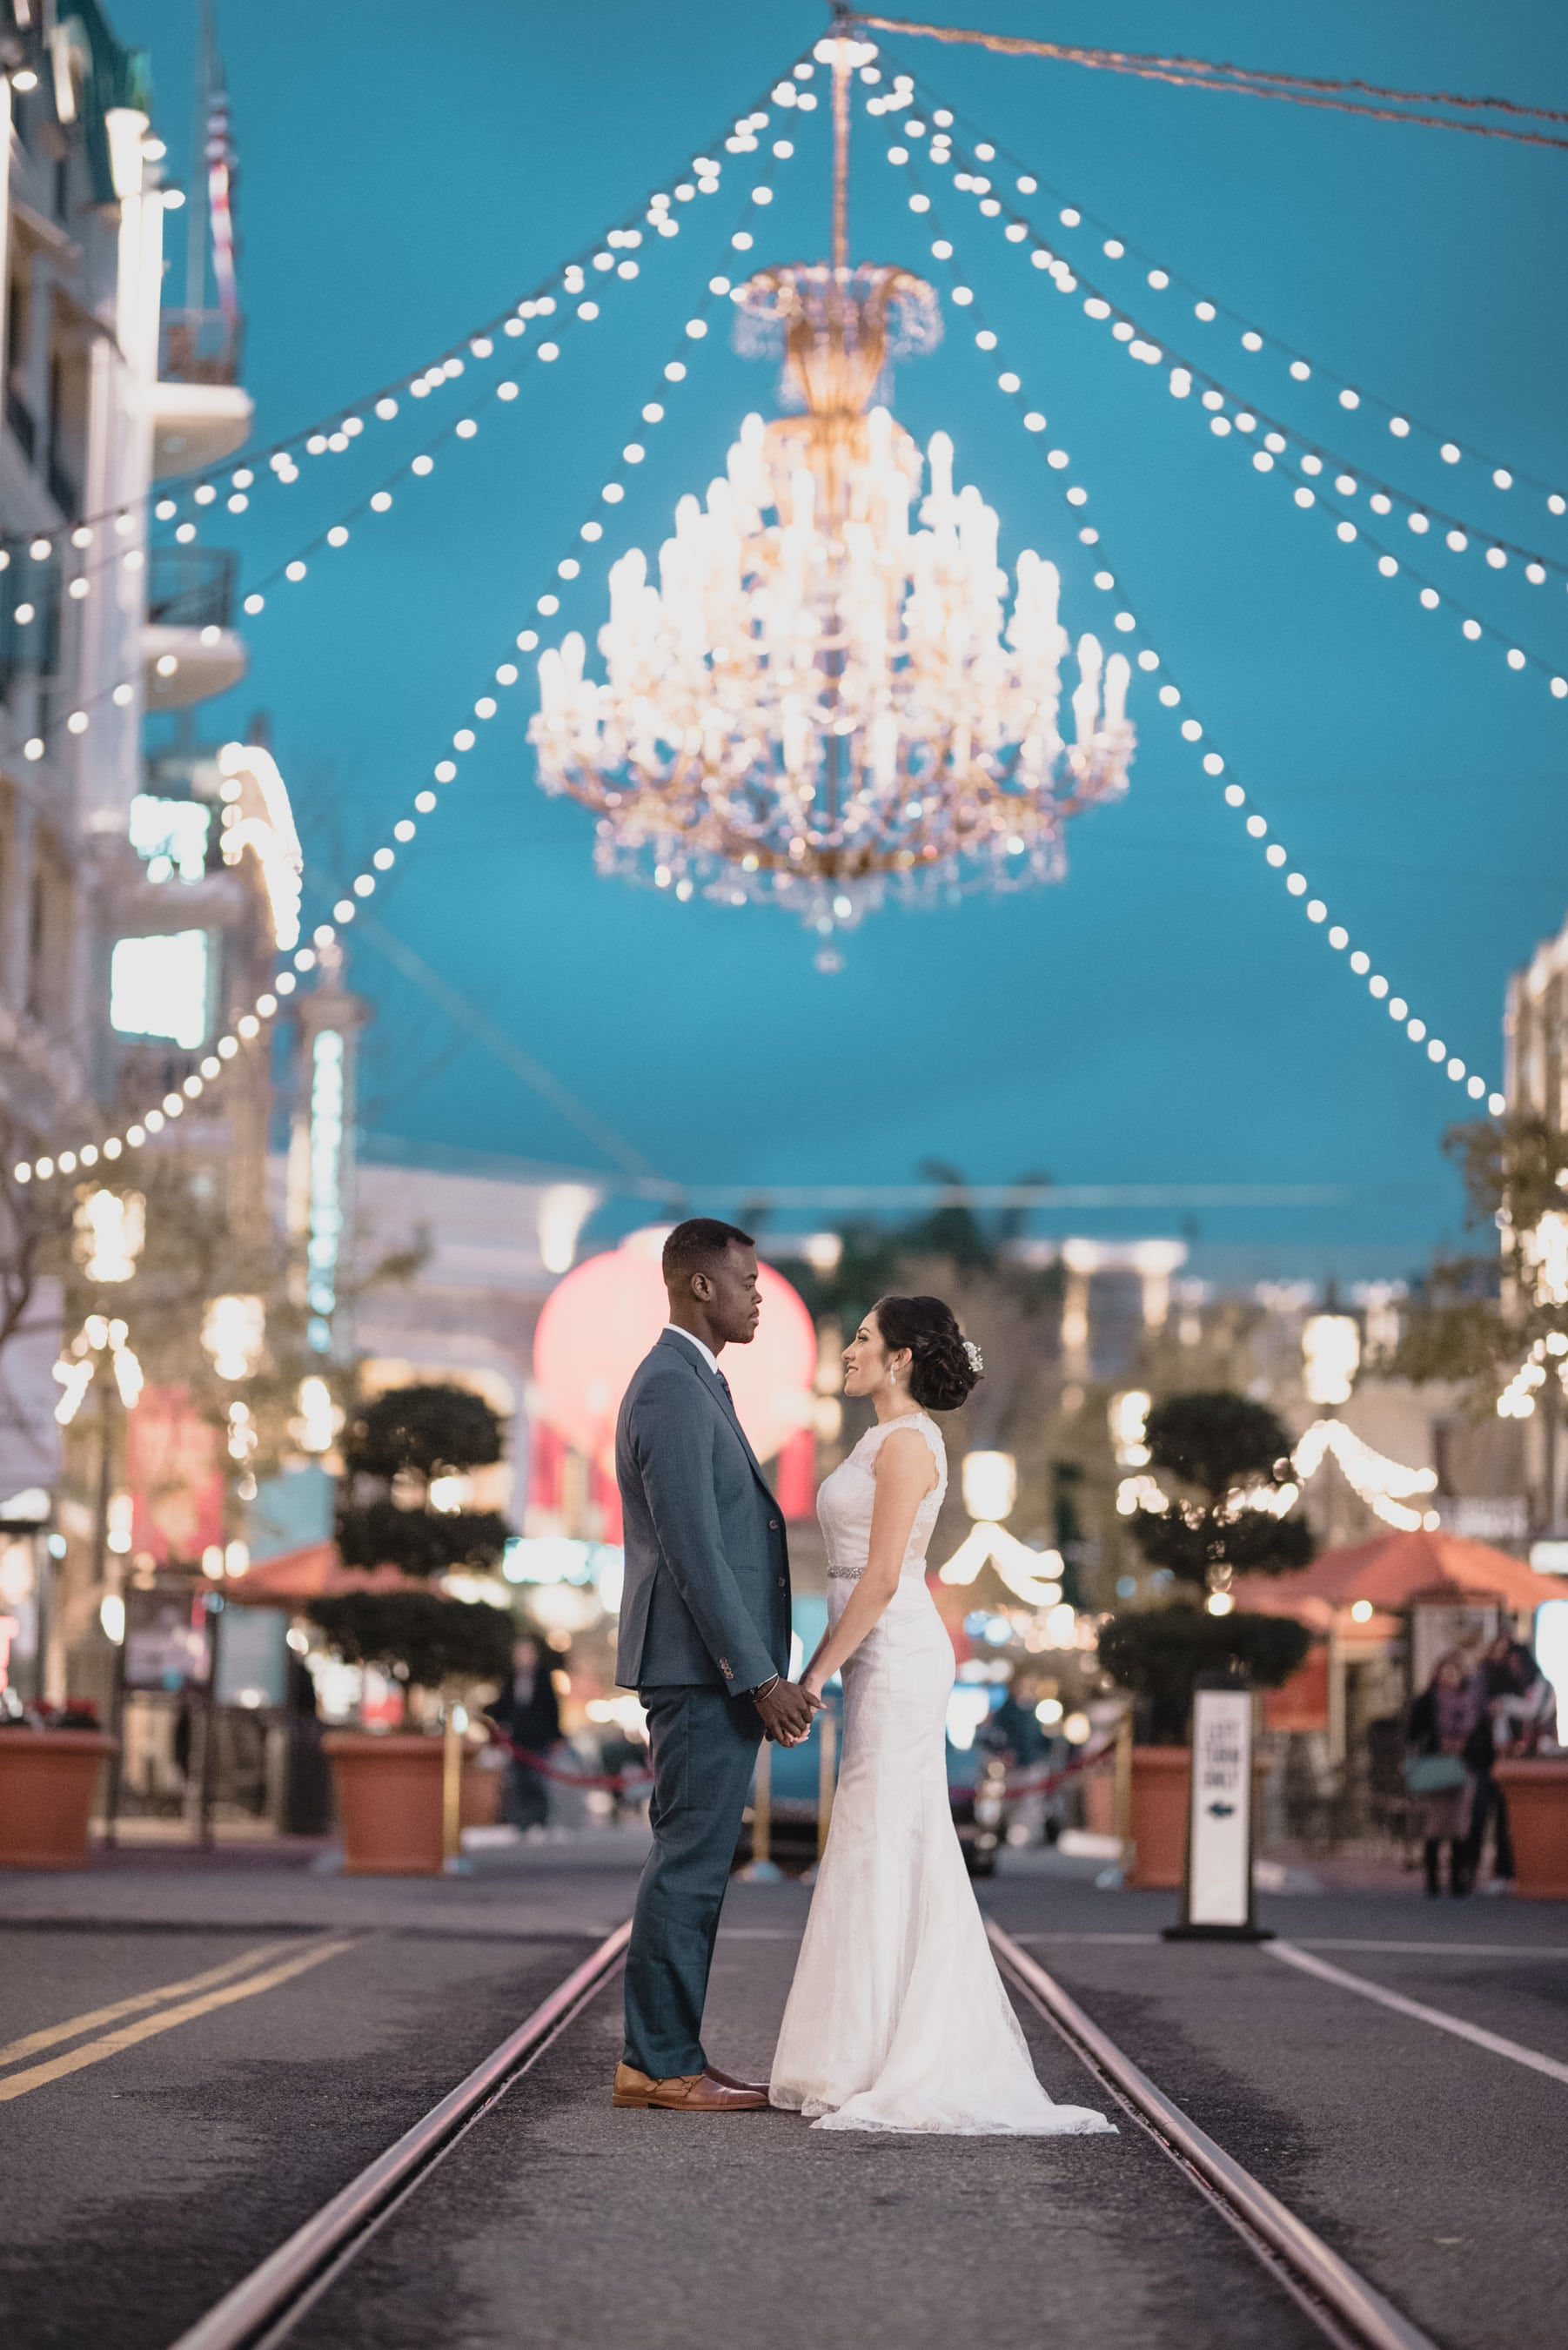 Bride and Groom portrait at Glendale Americana.jpg